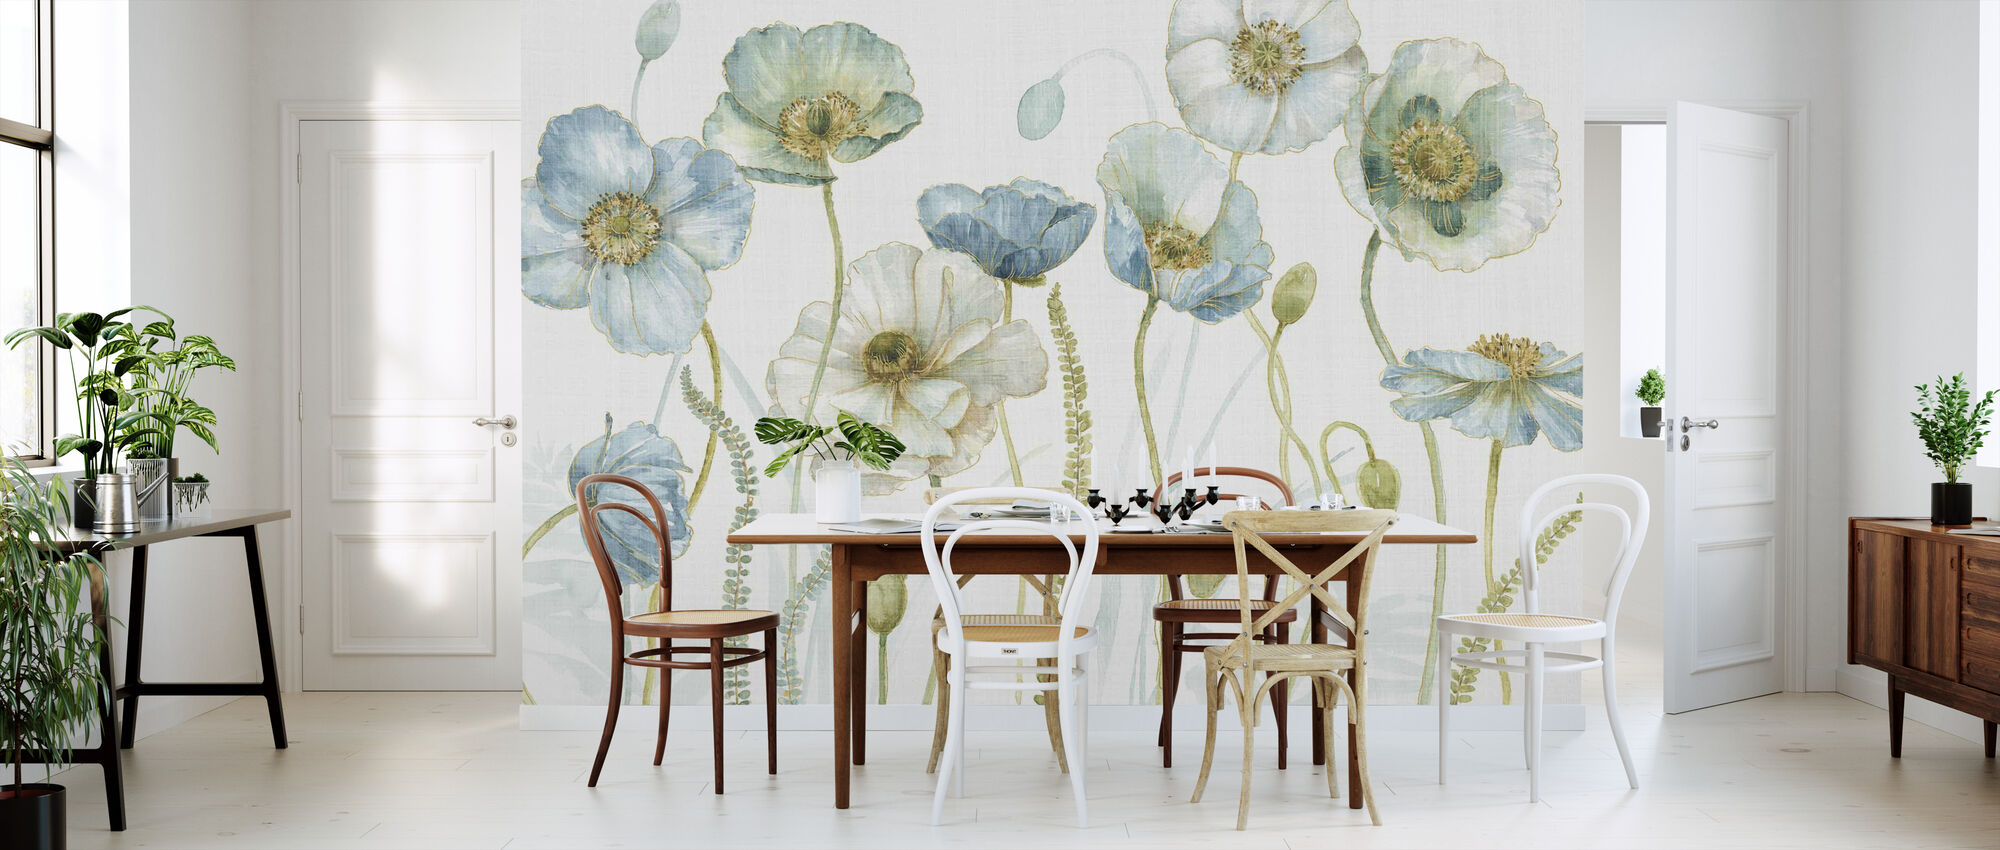 My Greenhouse Flowers on Linen - Wallpaper - Kitchen